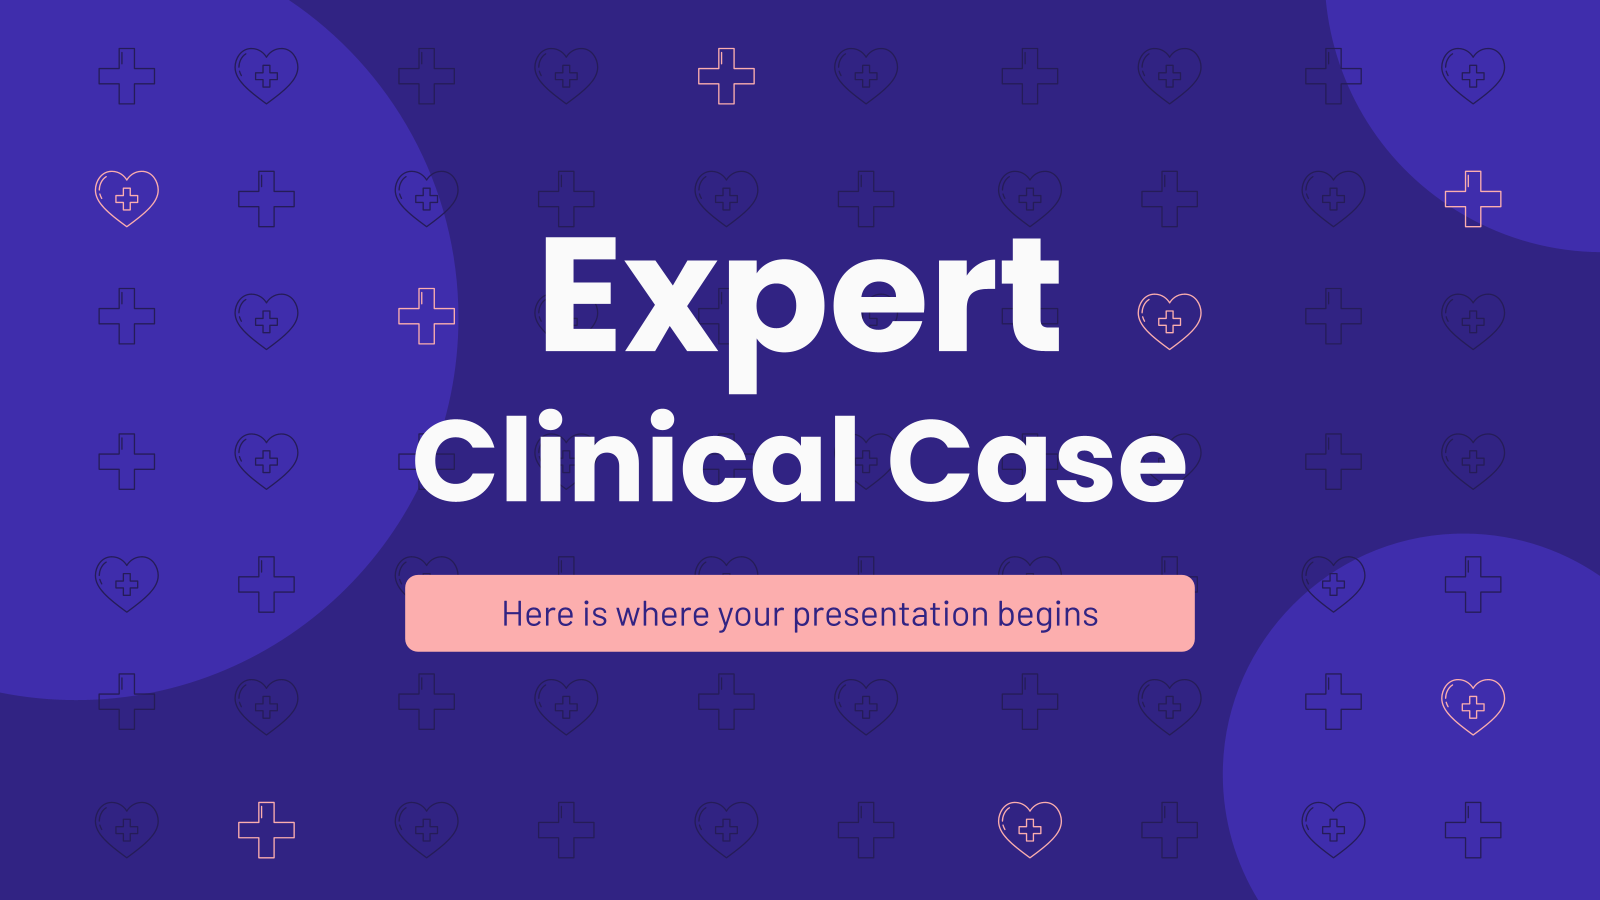 Expert Clinical Case presentation template